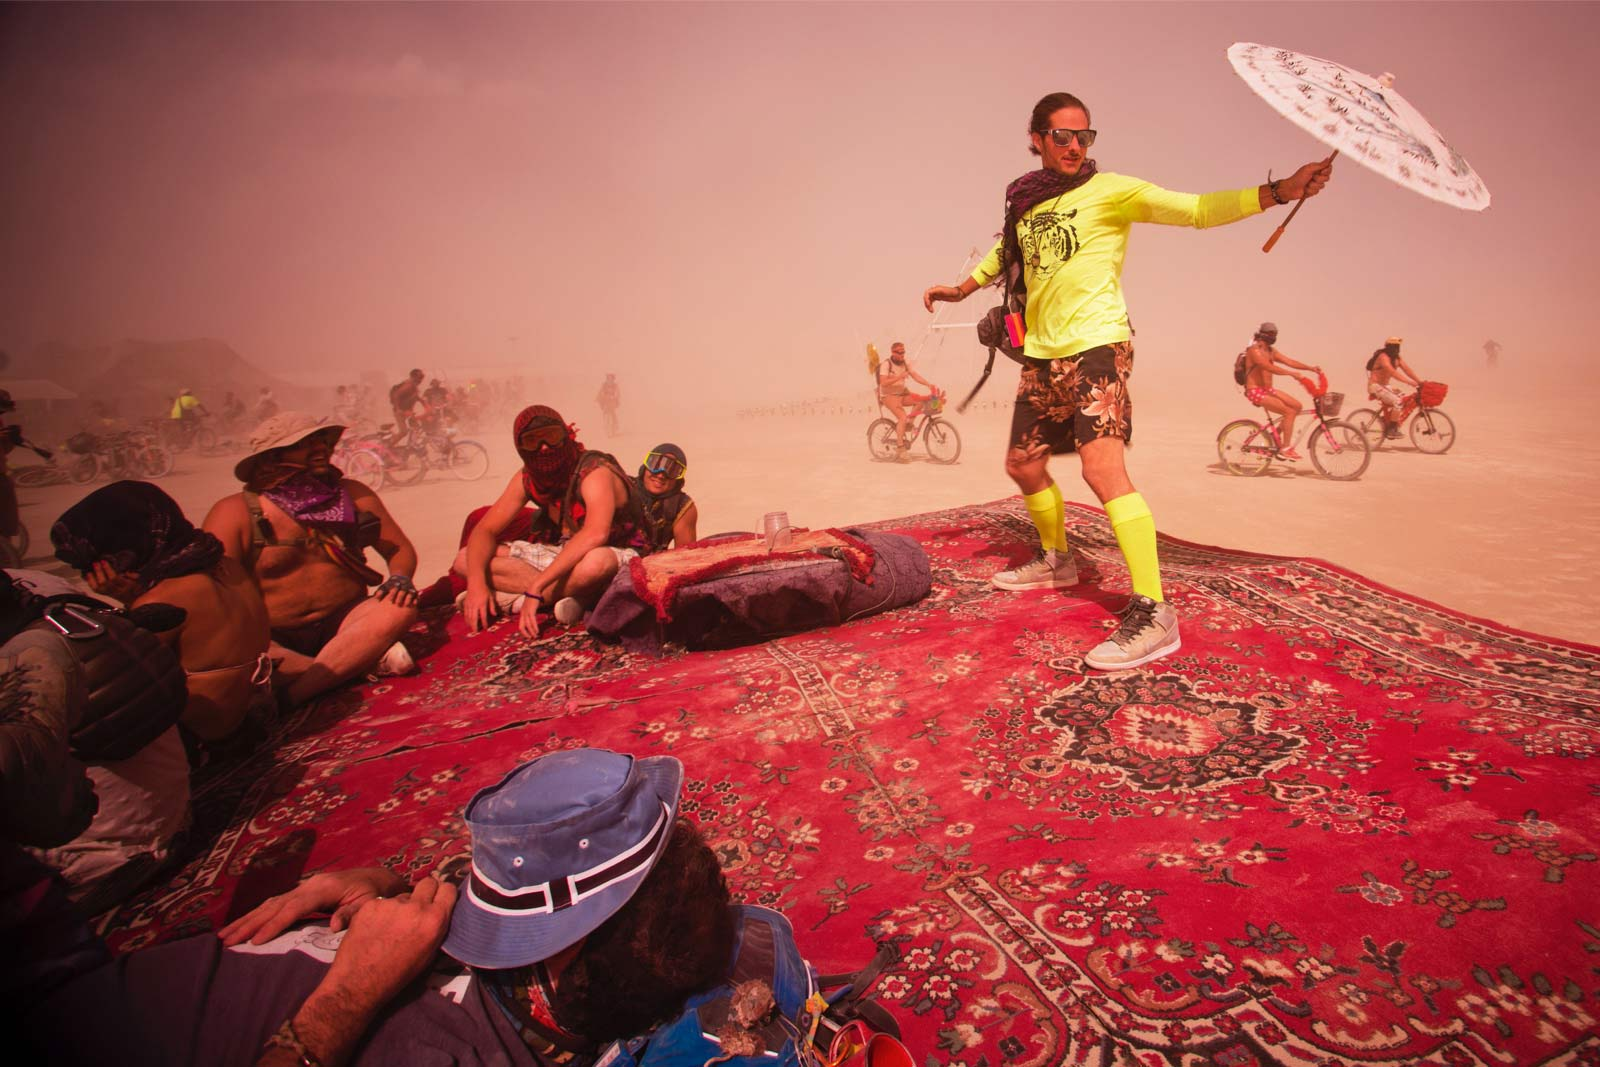 1-Burning-Man-2015-107;-Playa-Dust-Storm-Magic-Carpet-Art-Car-Jason